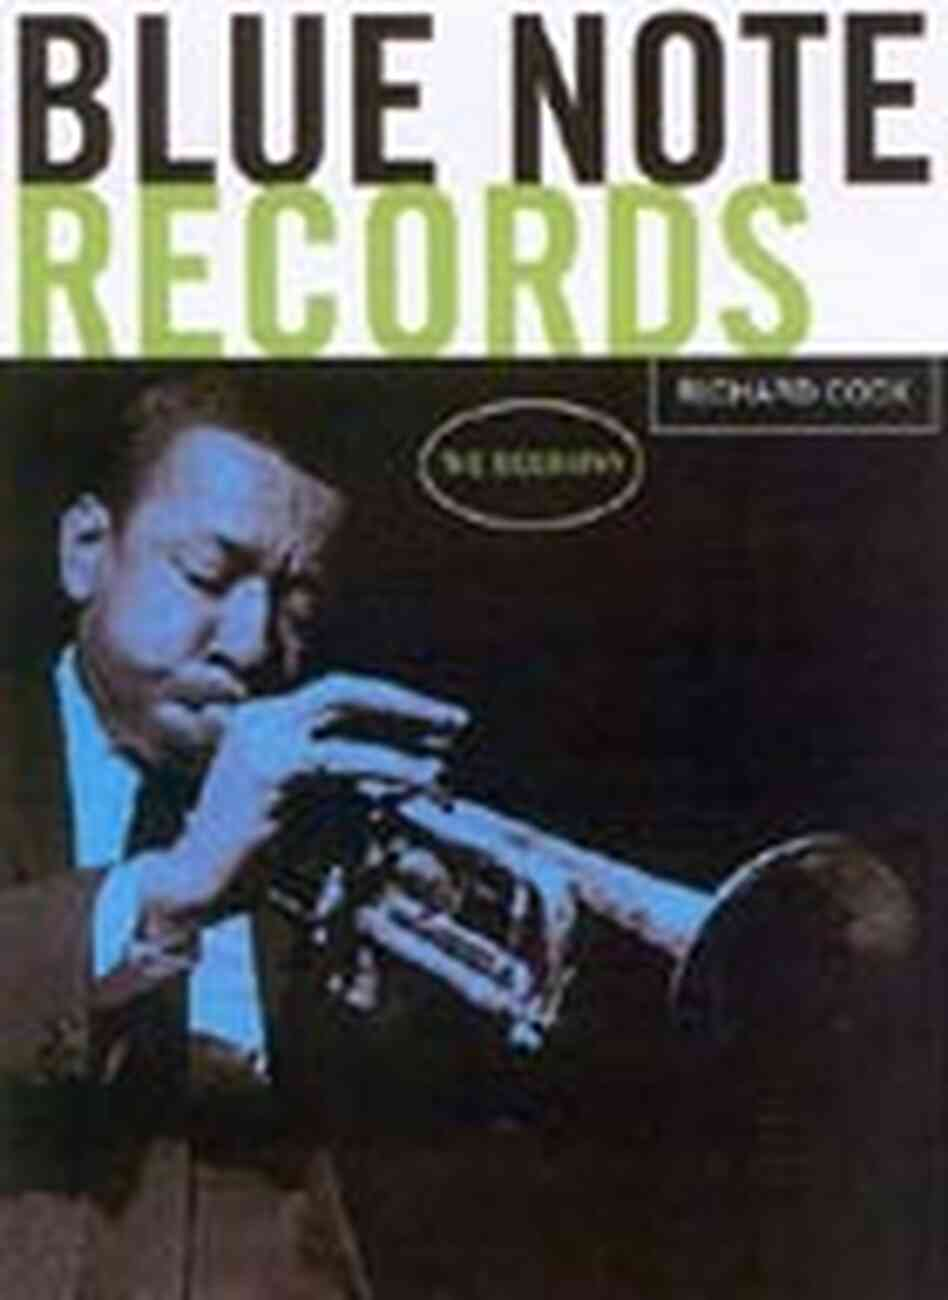 'Blue Note Records, The Biography'